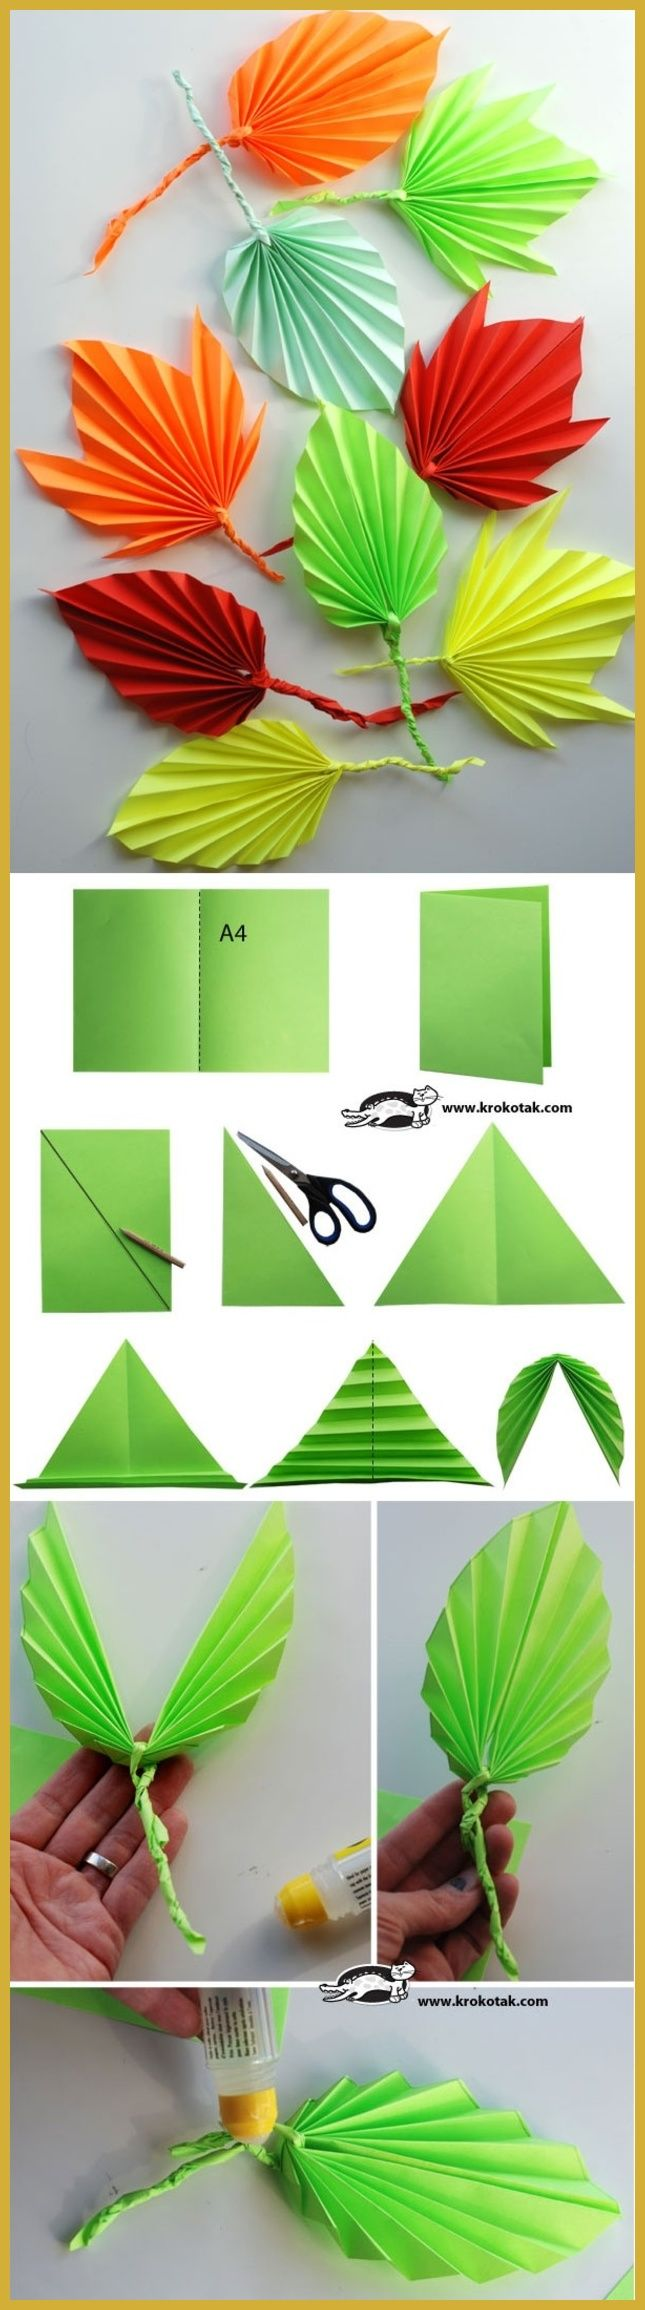 17 best bunga images on pinterest paper butterflies origami origami 5 designs you can learn from a video origami tutorial jeuxipadfo Choice Image